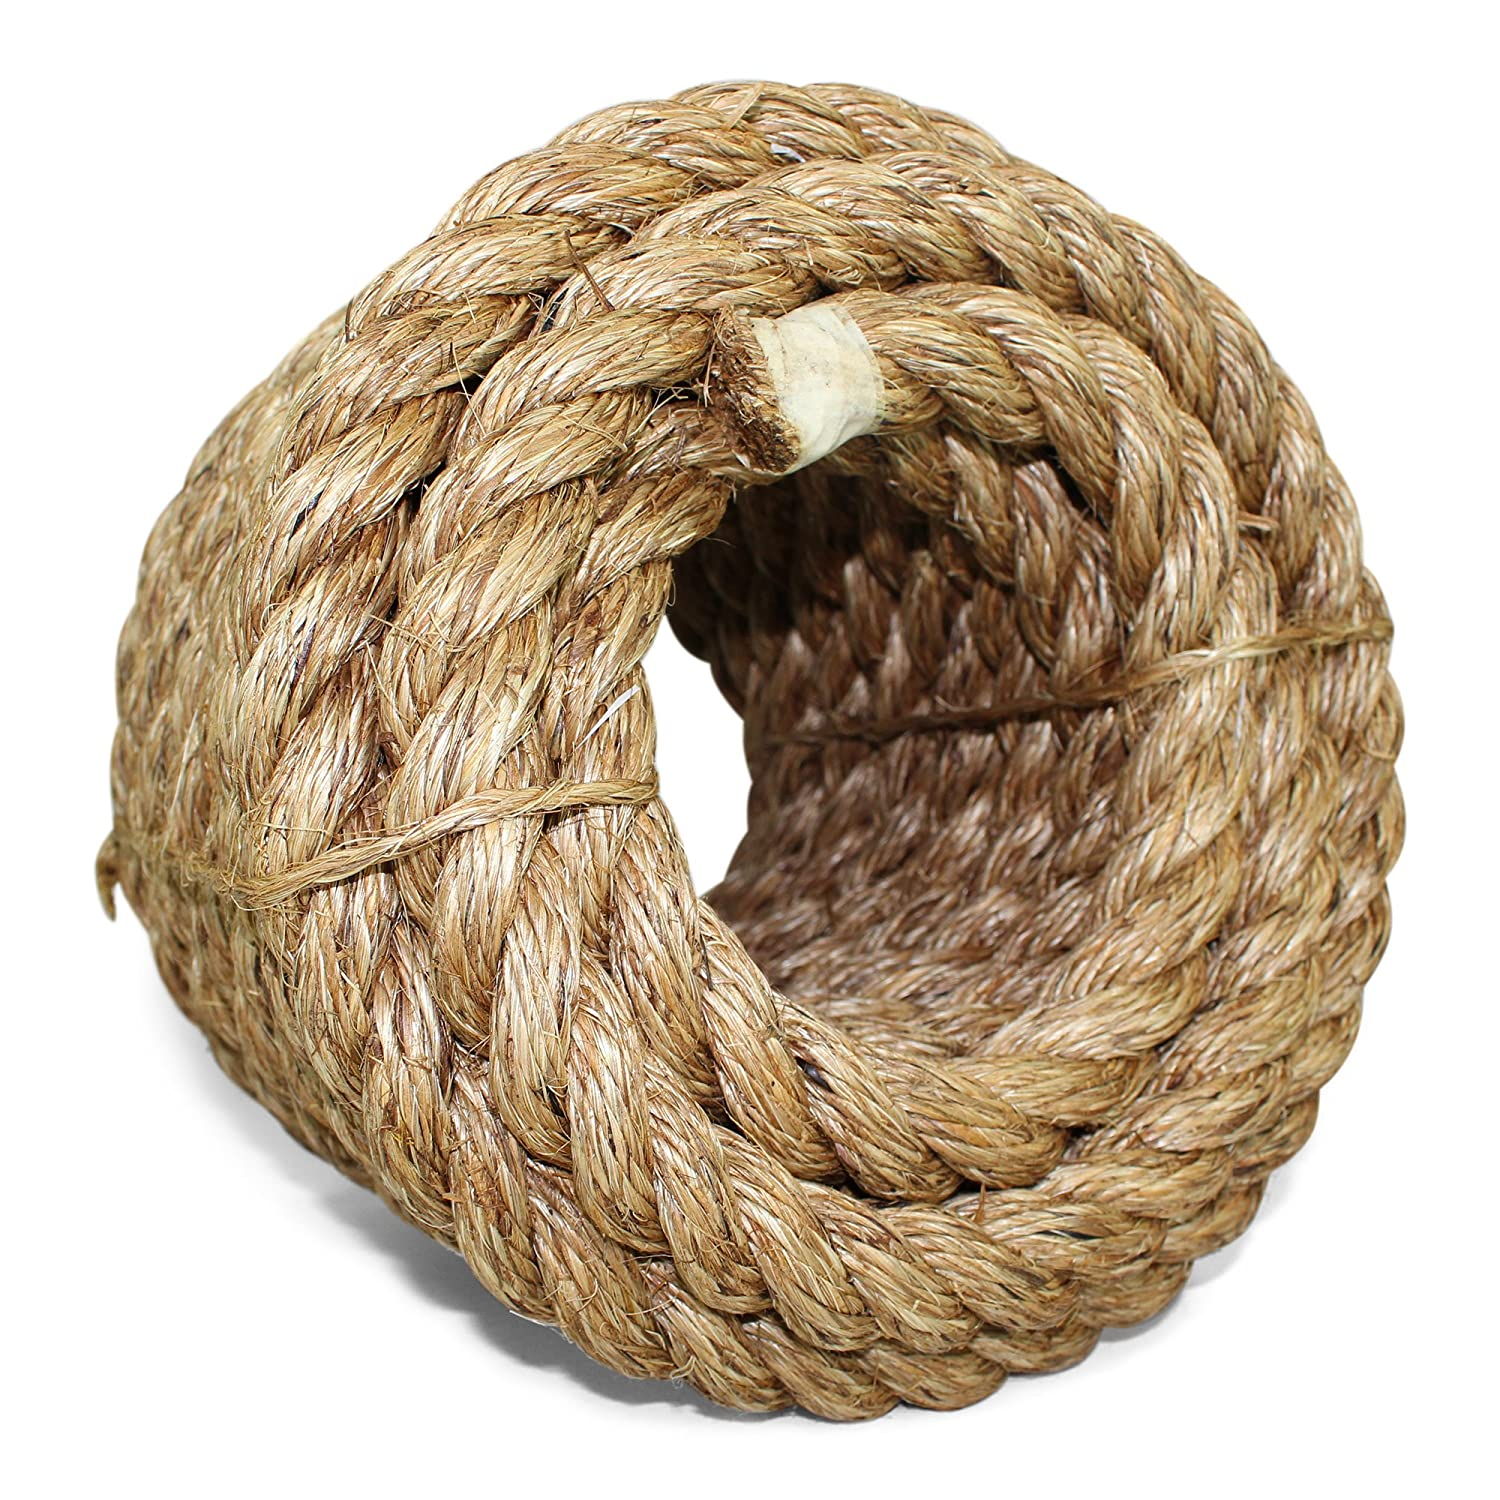 Twisted Manila Rope Hemp Rope (1 in x 50 ft) - SGT KNOTS - Tan Brown  Natural Rope - Thick Heavy Duty Rustic Outdoor Cordage for Craft, Dock,